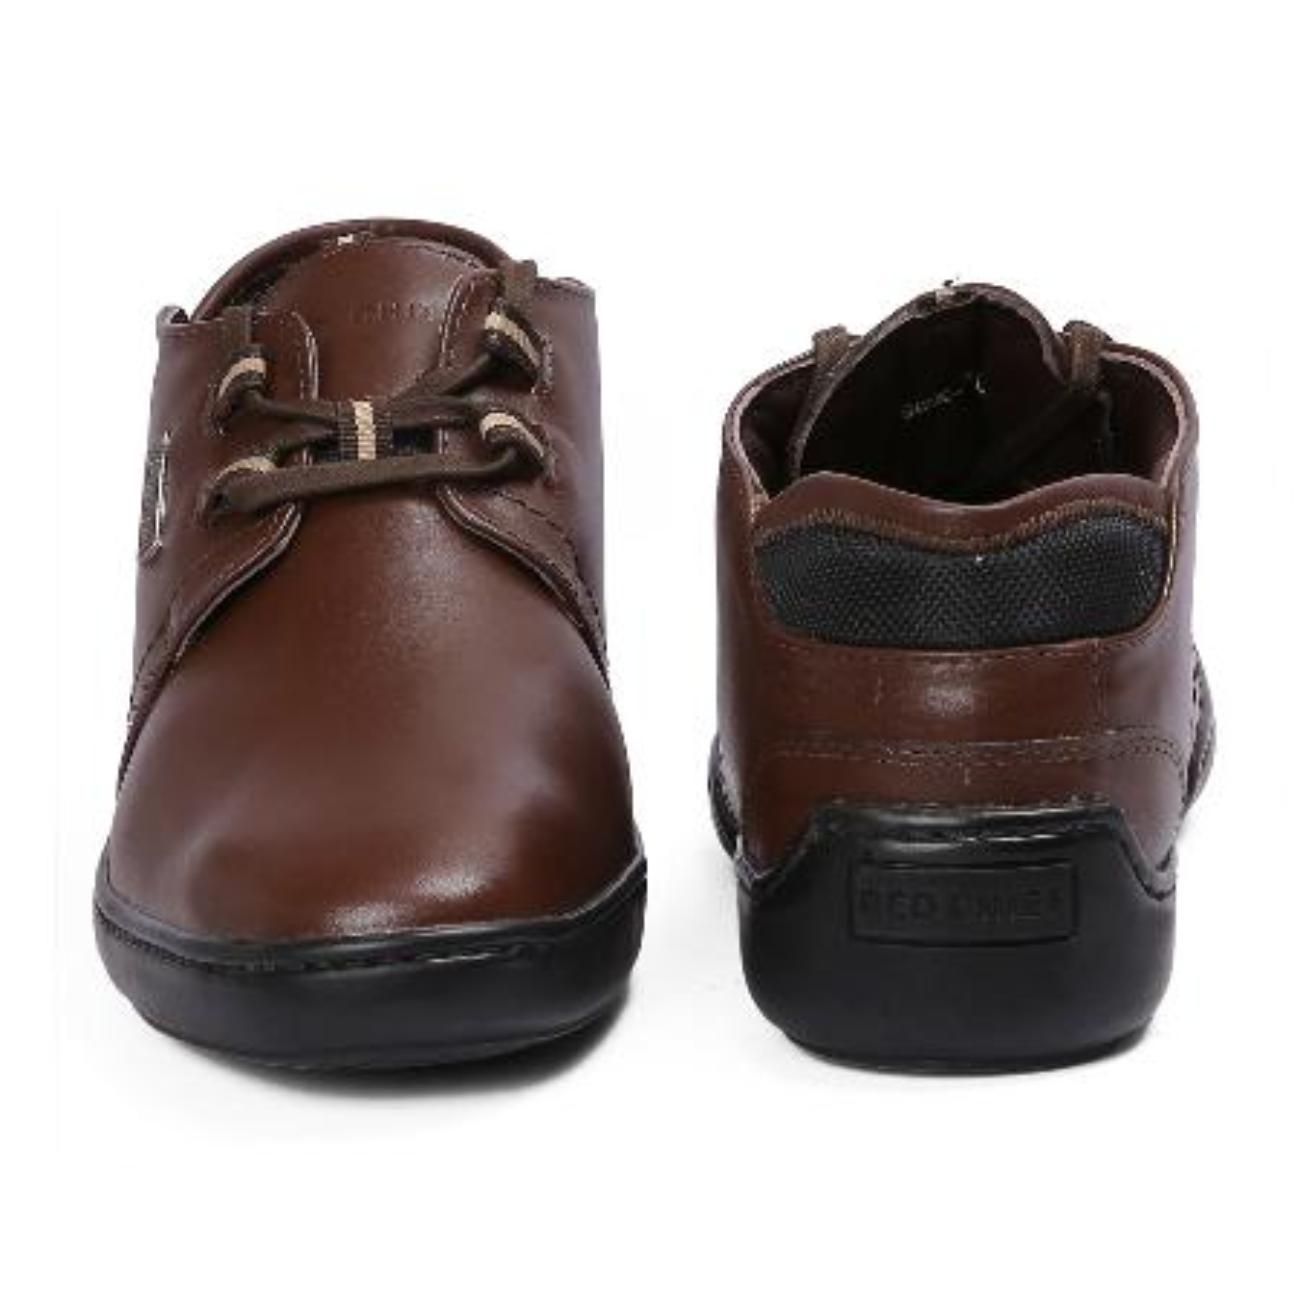 brown casual leather shoes top view